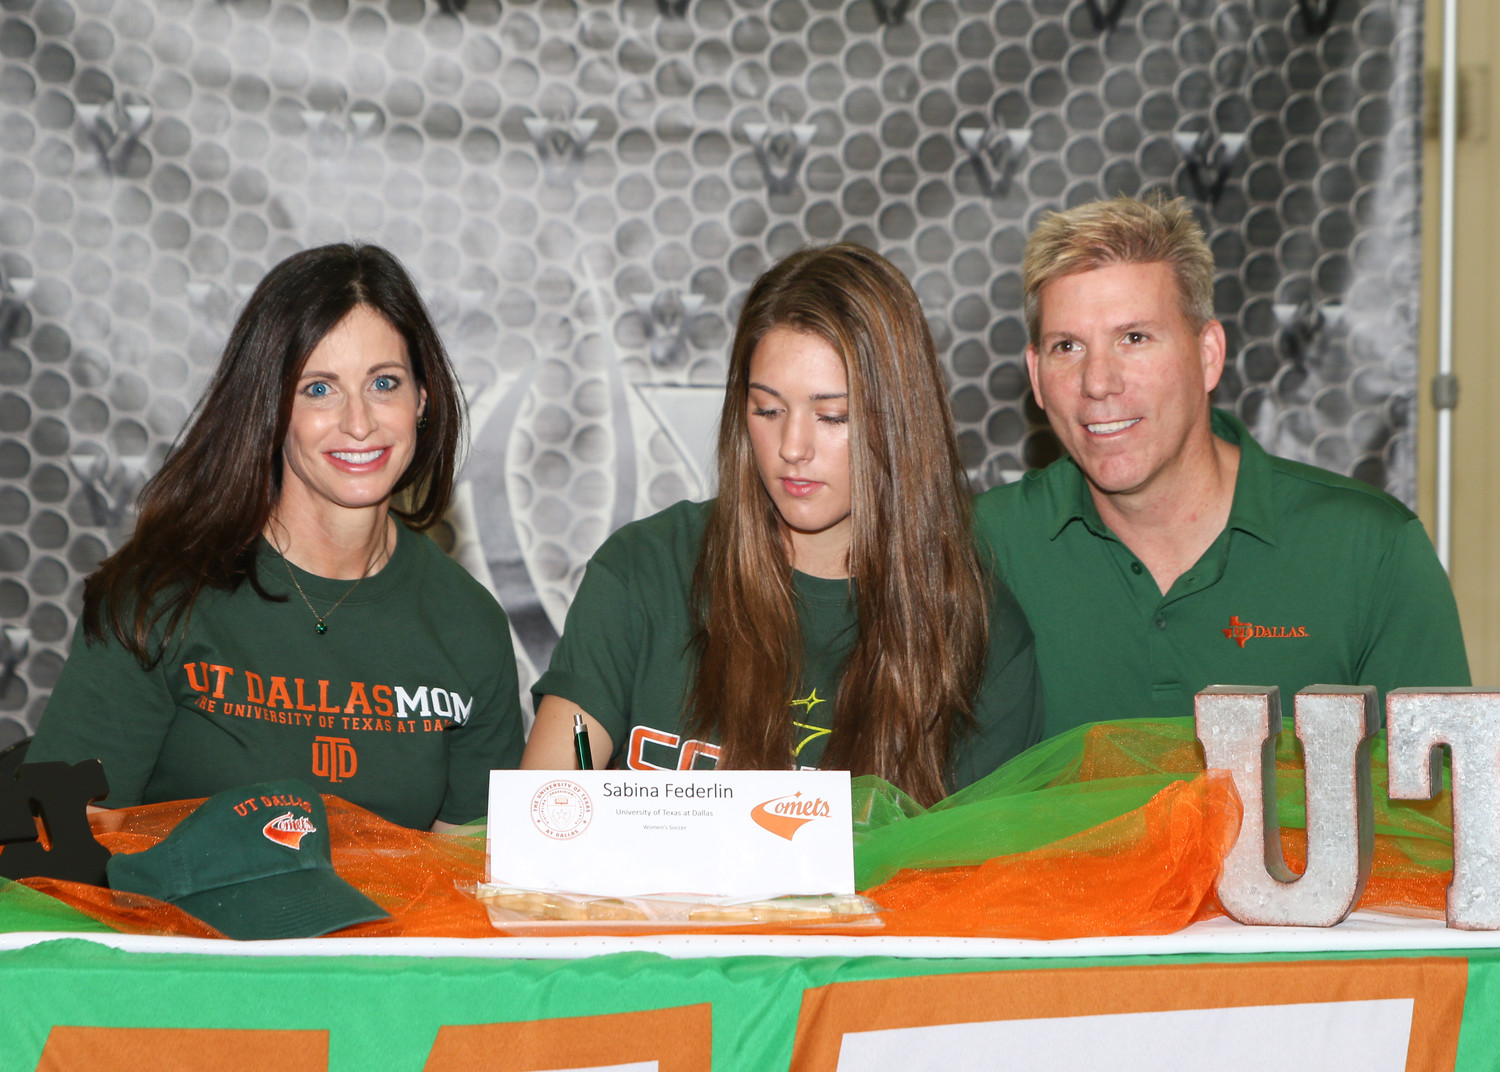 Sabina Federlin signed a letter of intent to play soccer at the University of Texas at Dallas during a signing day ceremony at Vandegrift High School on February 7, 2018.